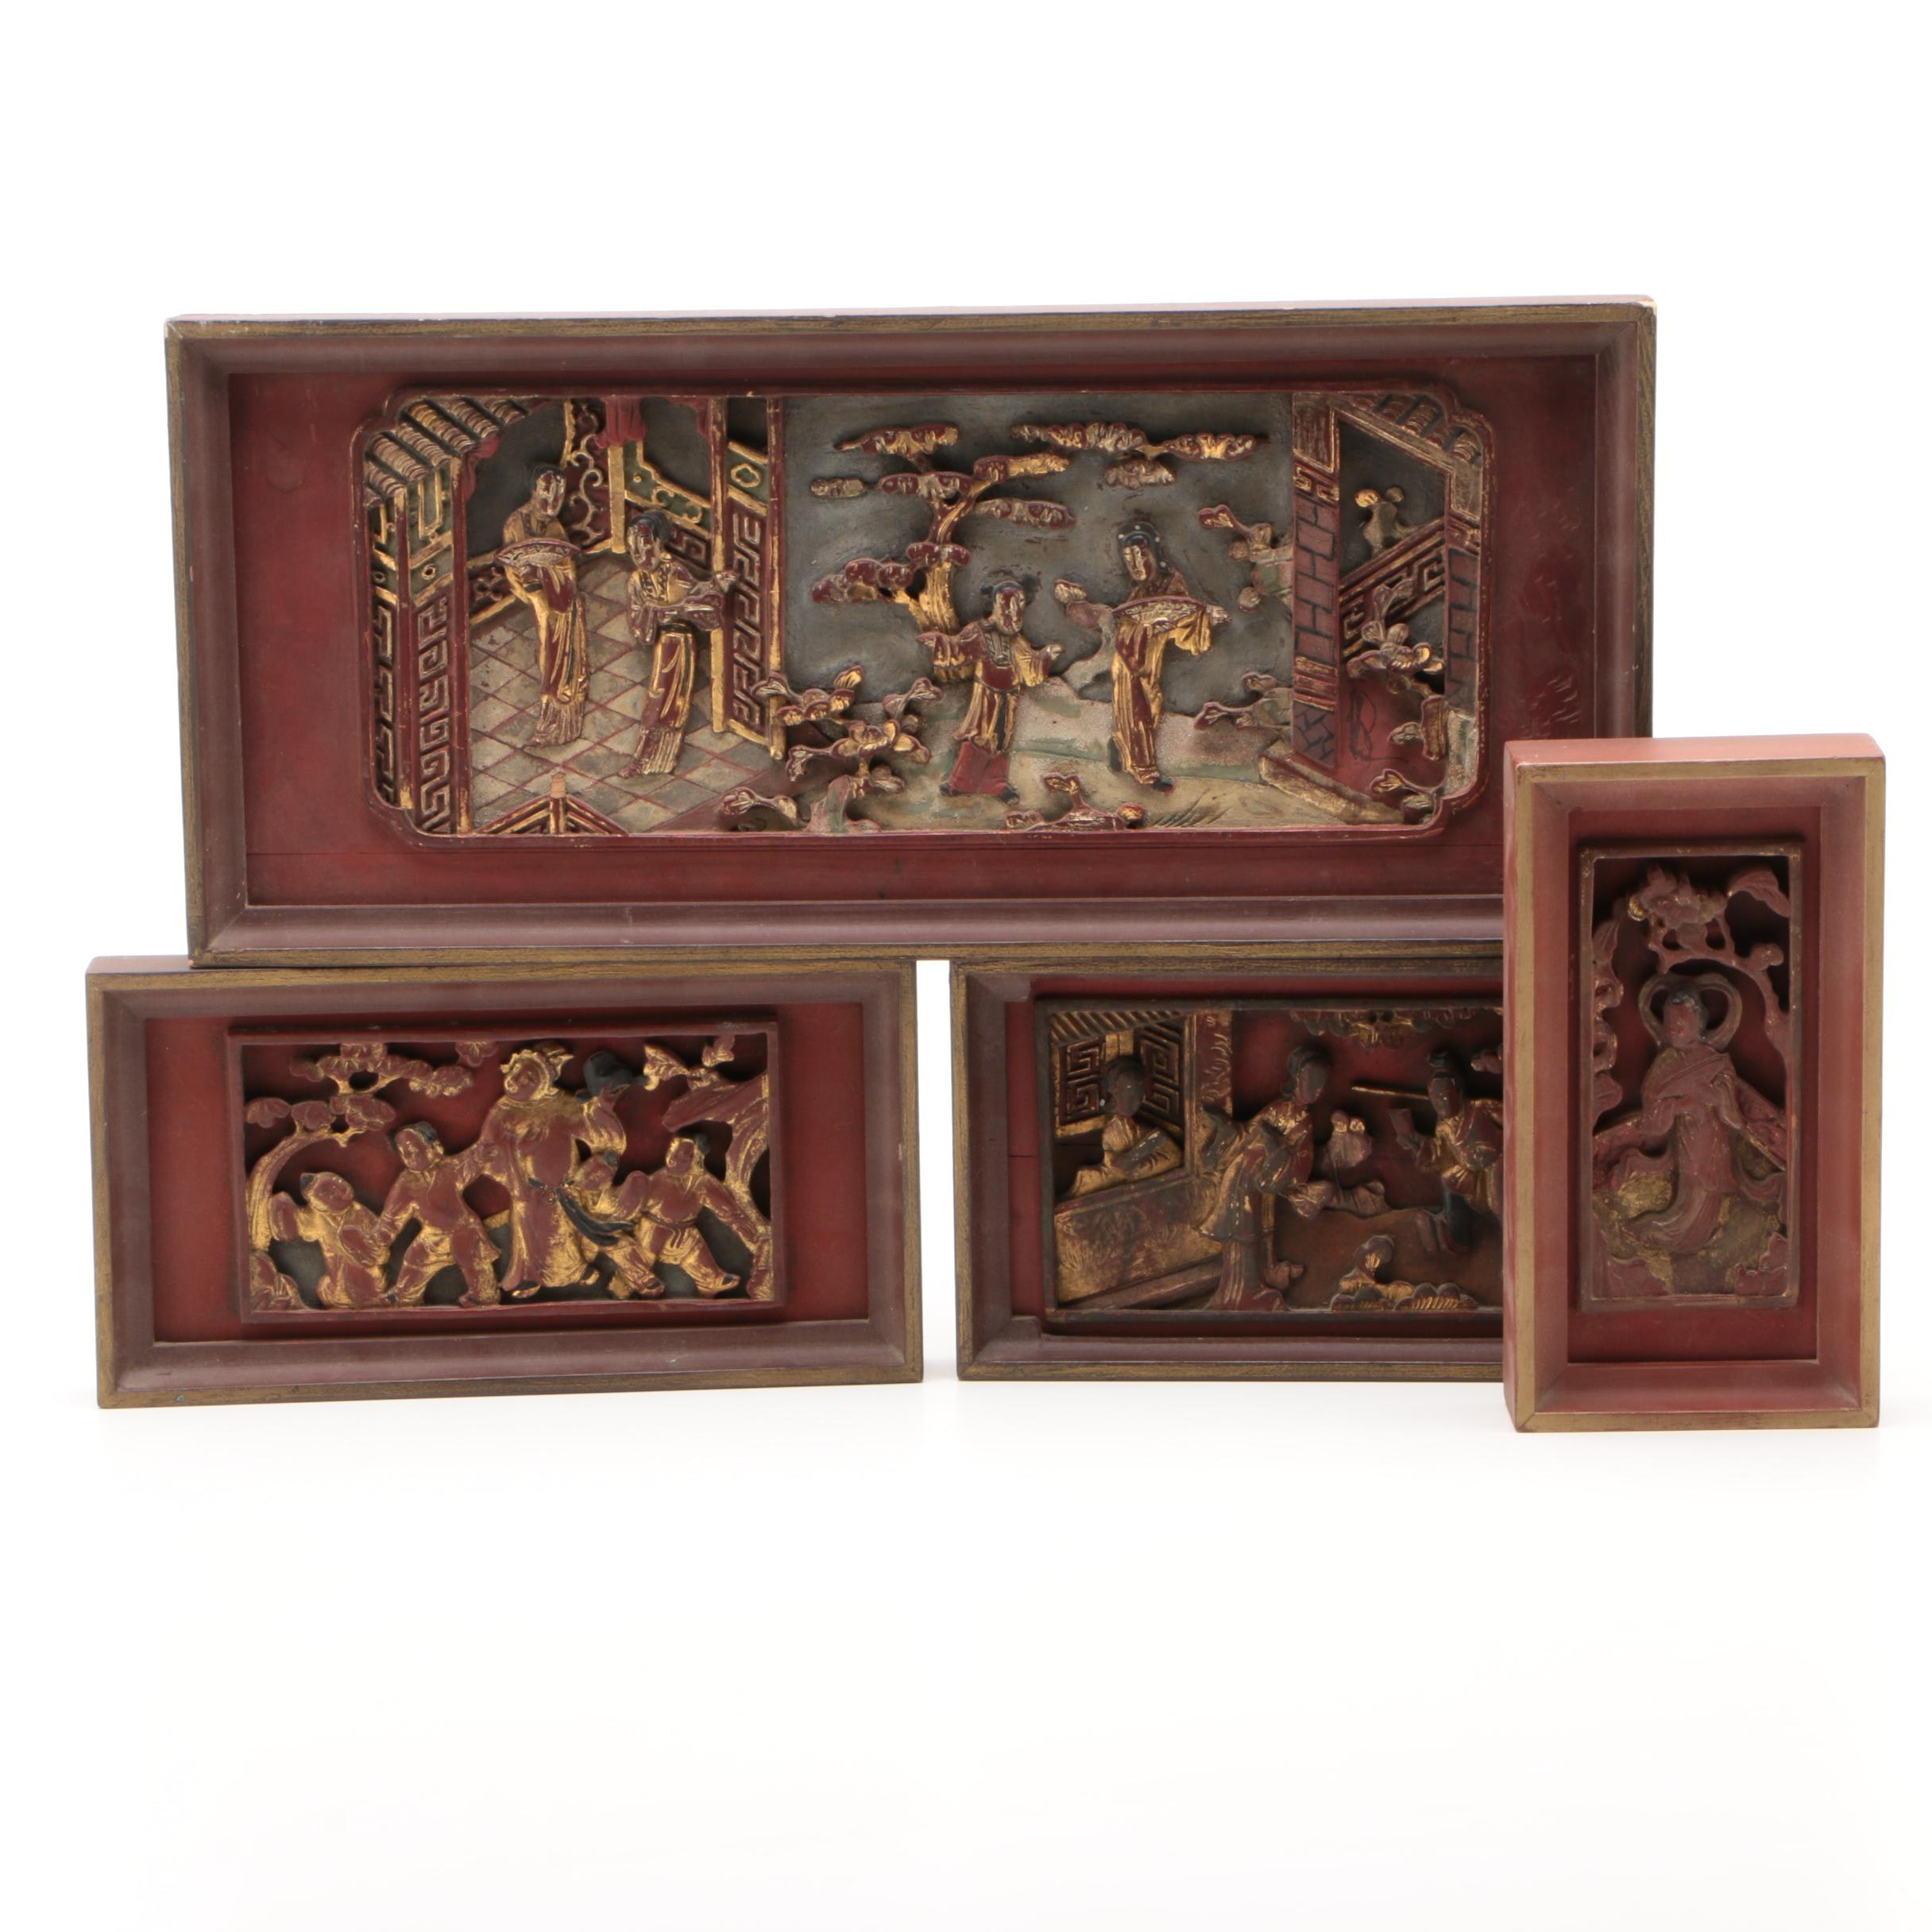 Chinese Gilded Carved Wood Panels